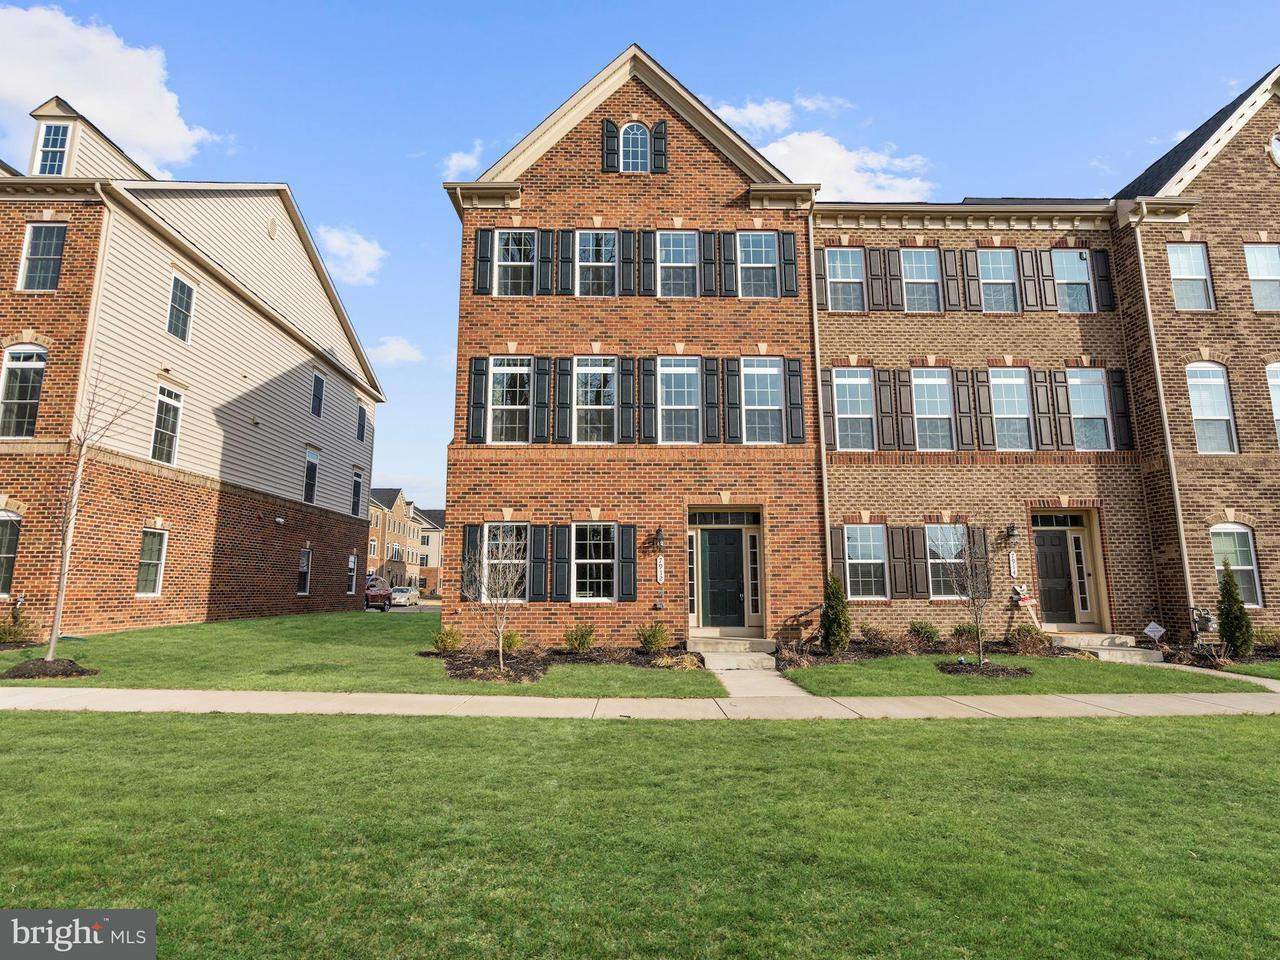 Townhouse for Sale at 7912 Culloden Crest Lane 7912 Culloden Crest Lane Gainesville, Virginia 20155 United States